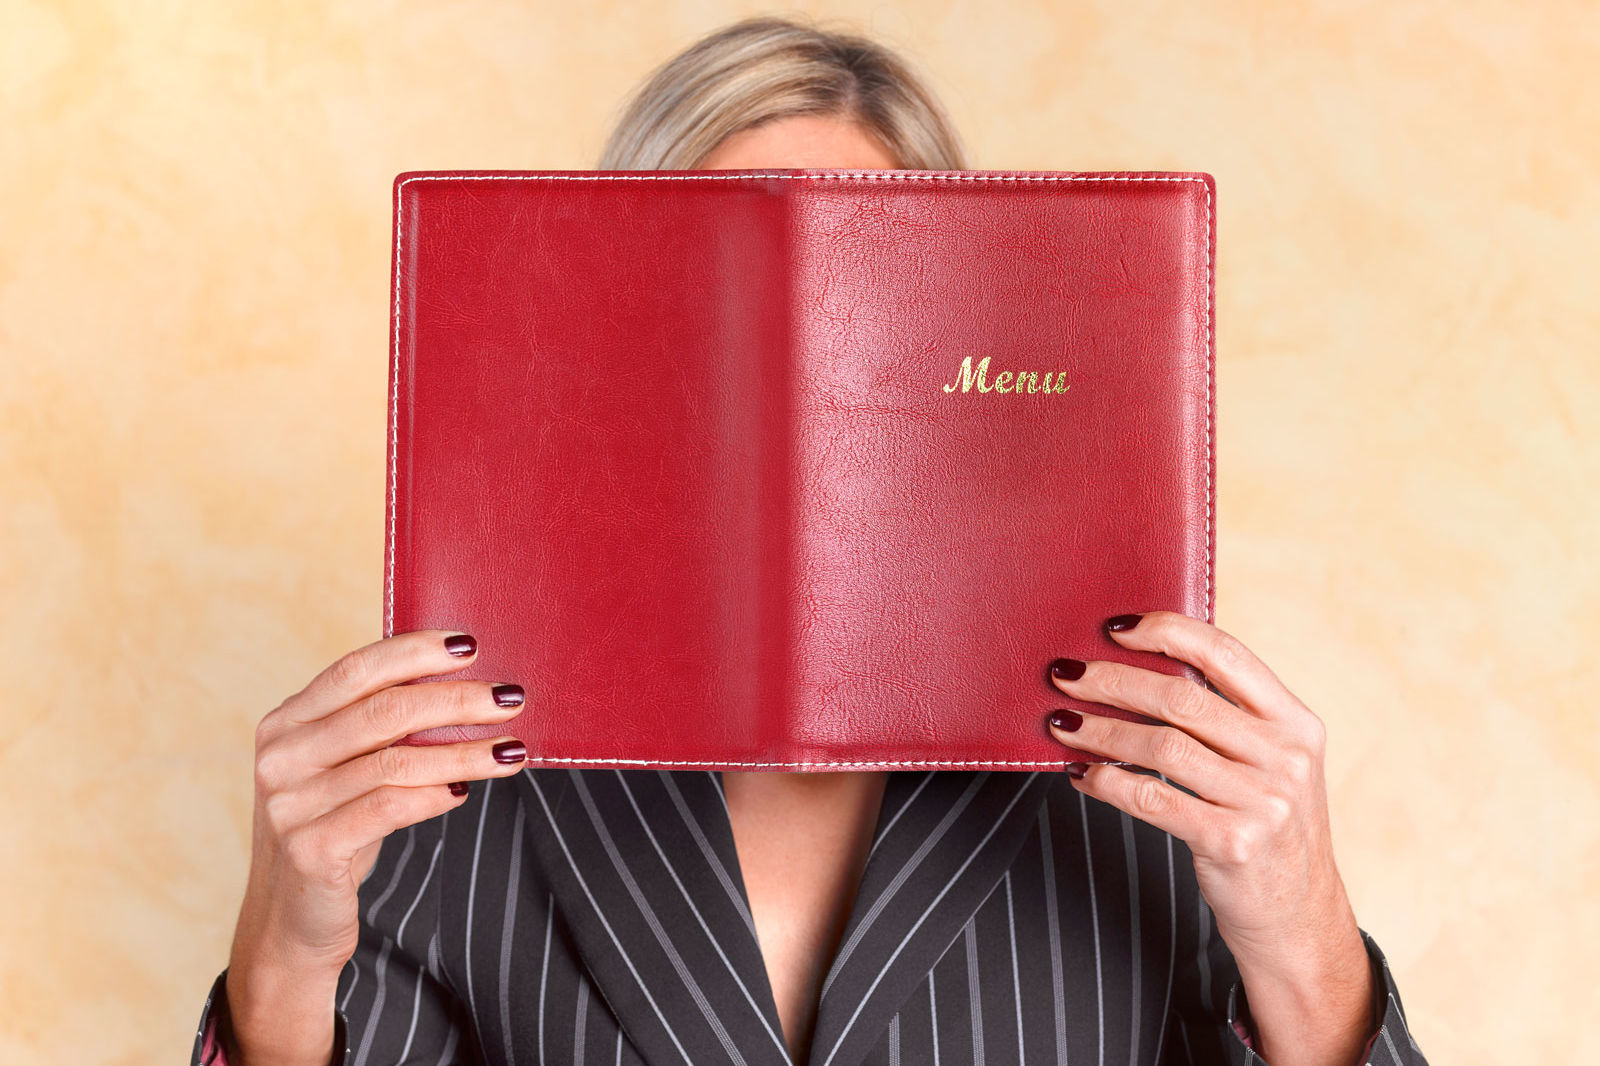 Why It's So Difficult to Choose Something Off a Menu, According to Science